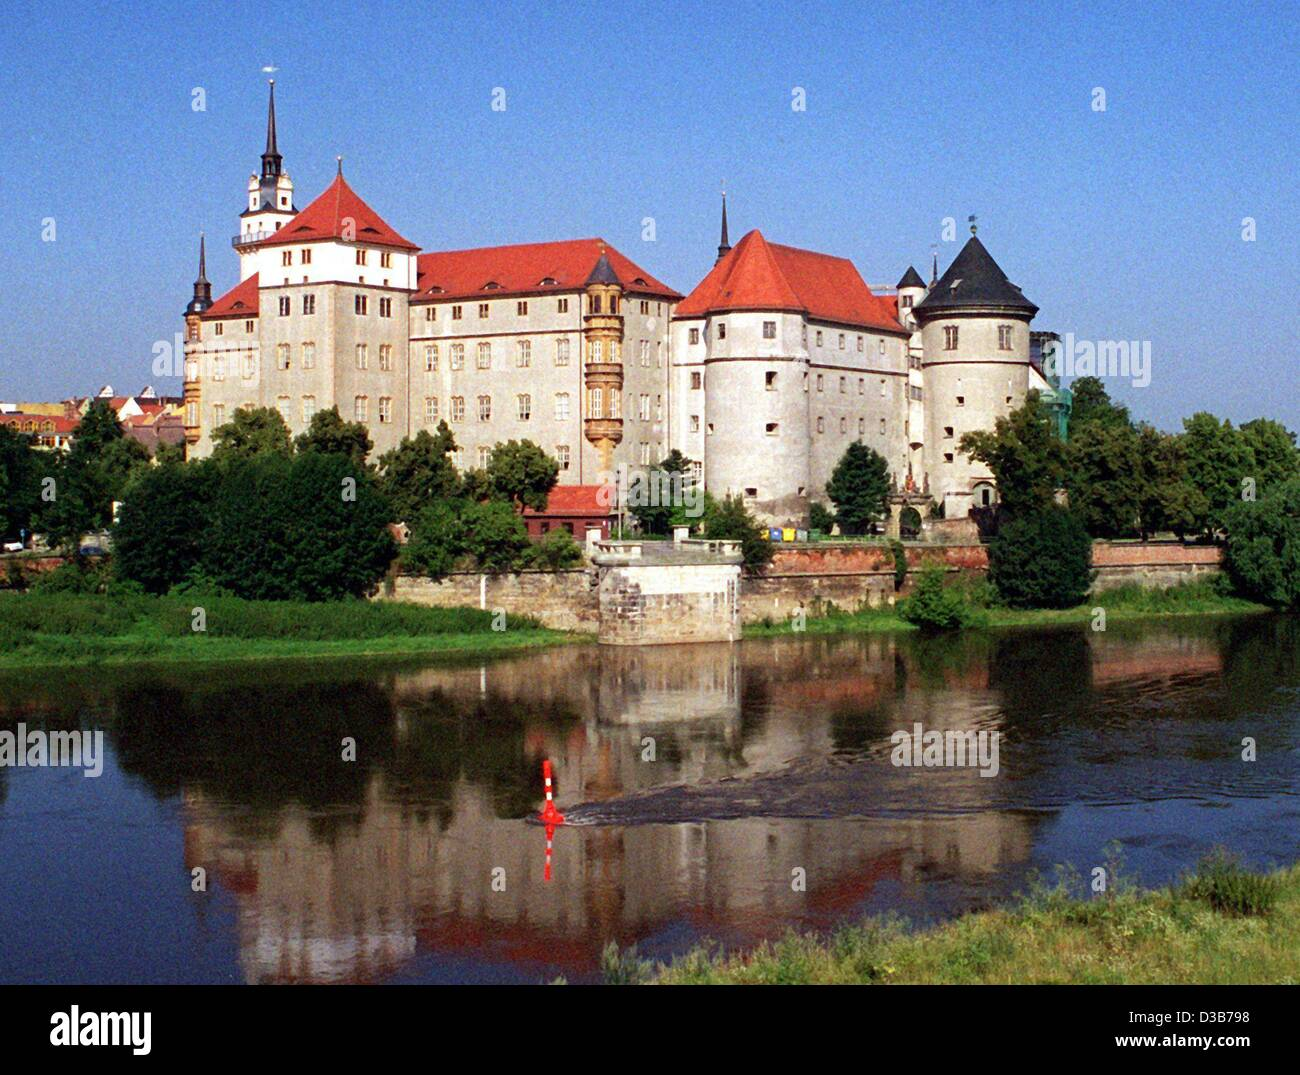 (dpa files) - A view across the River Elbe (Labe) to Hartenfels Castle in Torgau, Germany, 24 July 2001. The renaissance Stock Photo